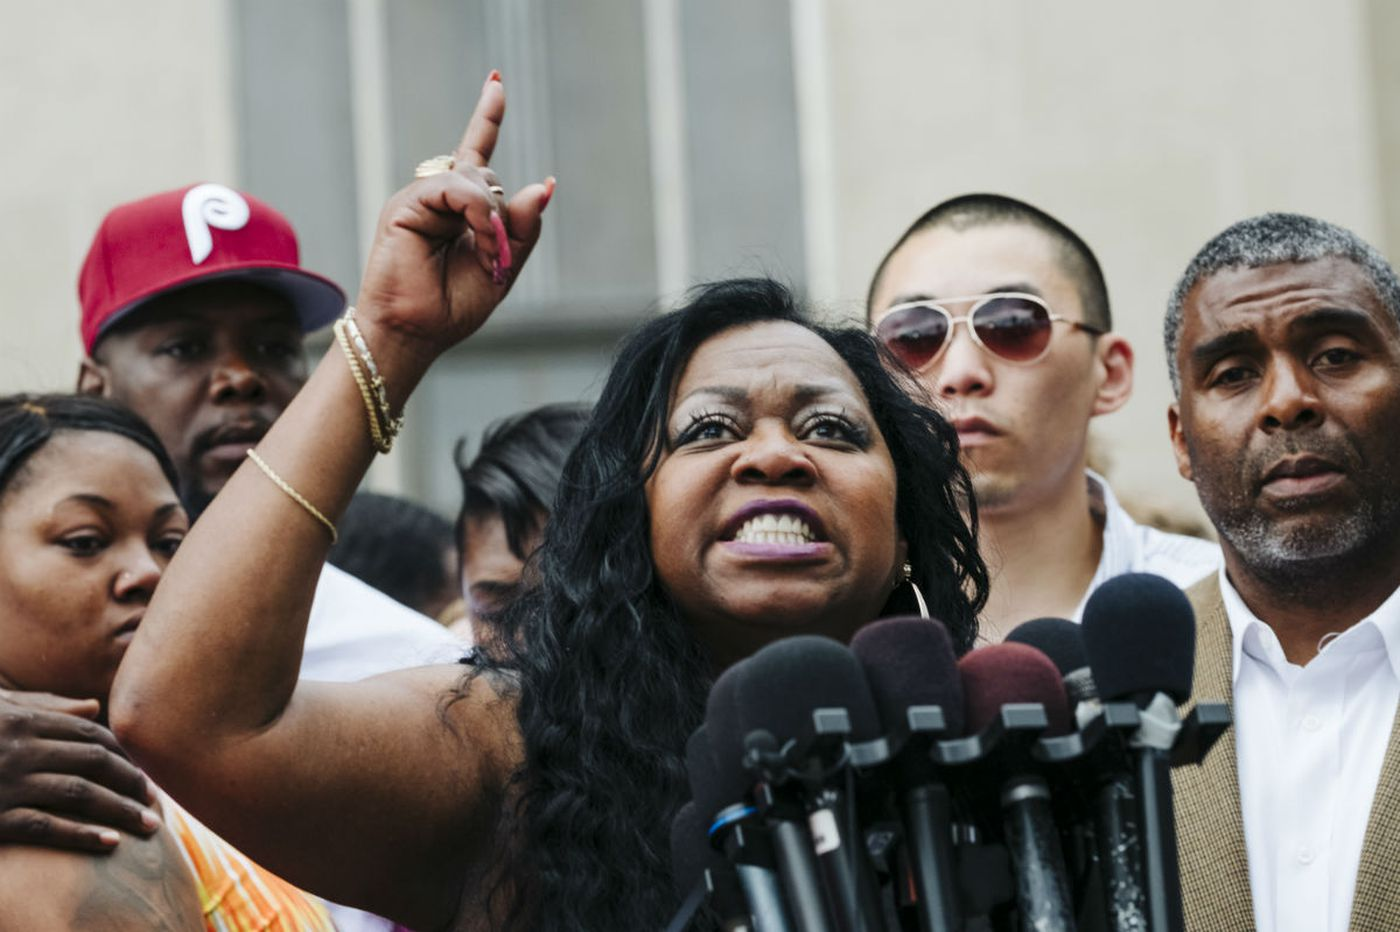 2 black women, 2 high-profile cases: Scales of injustice?